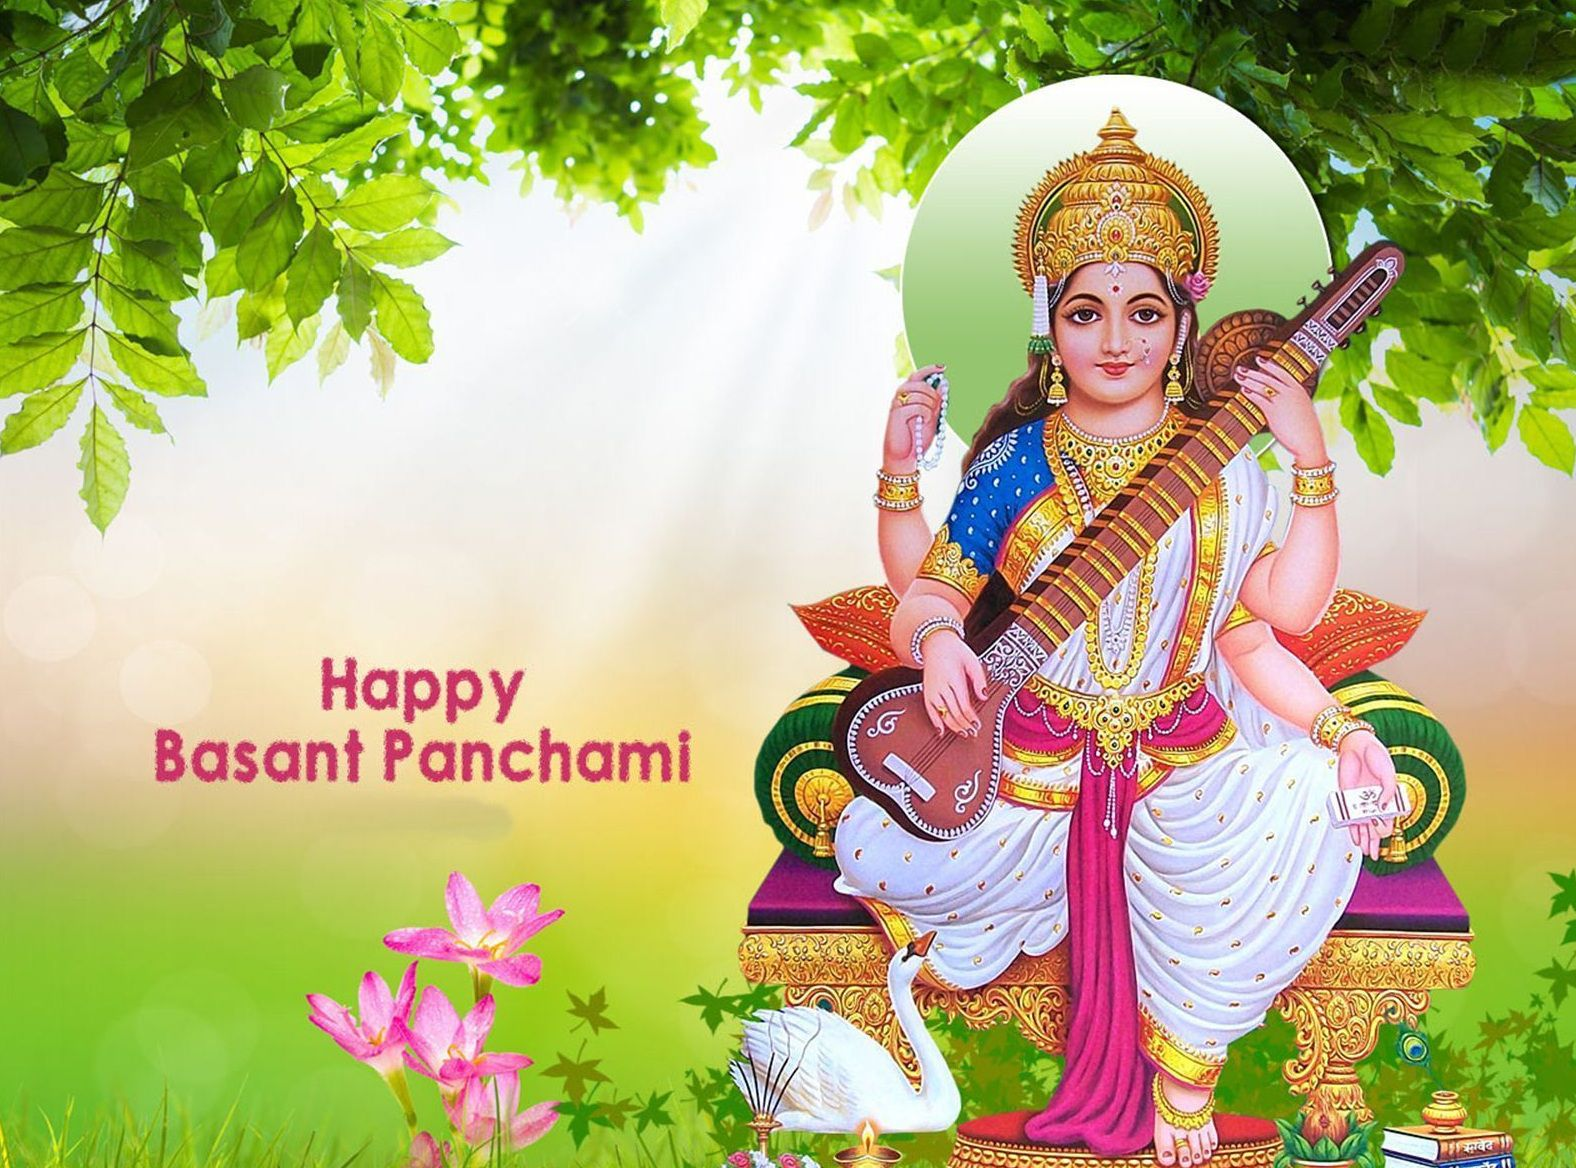 Basant Panchami – Short Essay, Speech, Paragraph in English for School Students